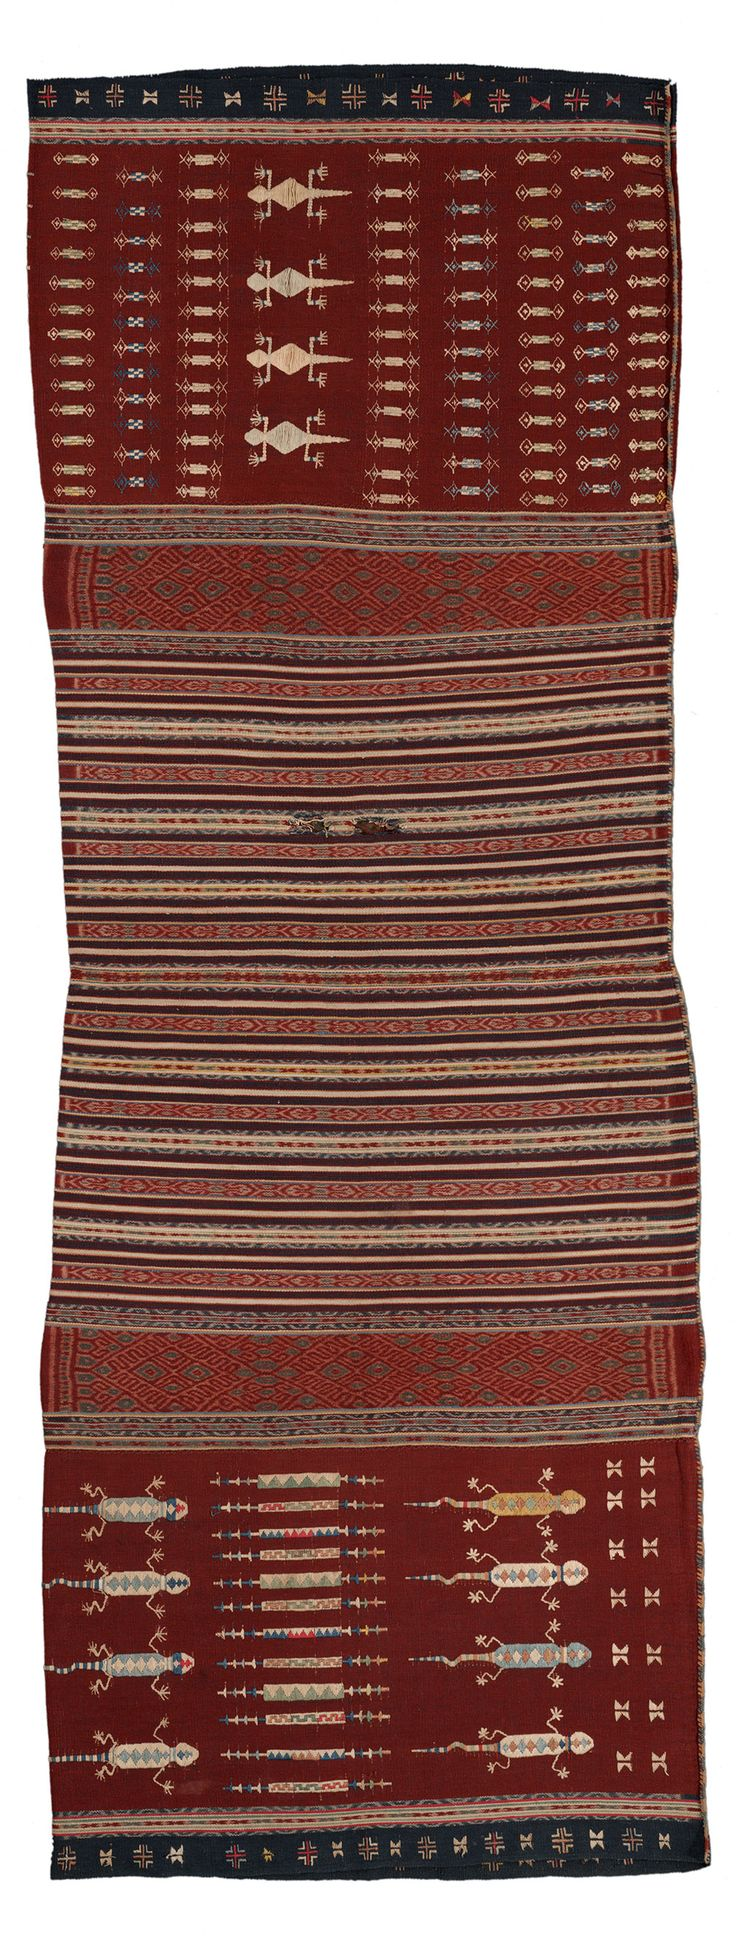 Timor Weavings As part of the 50th anniversary celebrations of the Fowler Museum at UCLA, Los Angeles, a series of three world textile exhibitions are on show there this autumn. Textiles of Timor, Island in the Woven Sea opens 7 September 2014 until 4 January 2015.